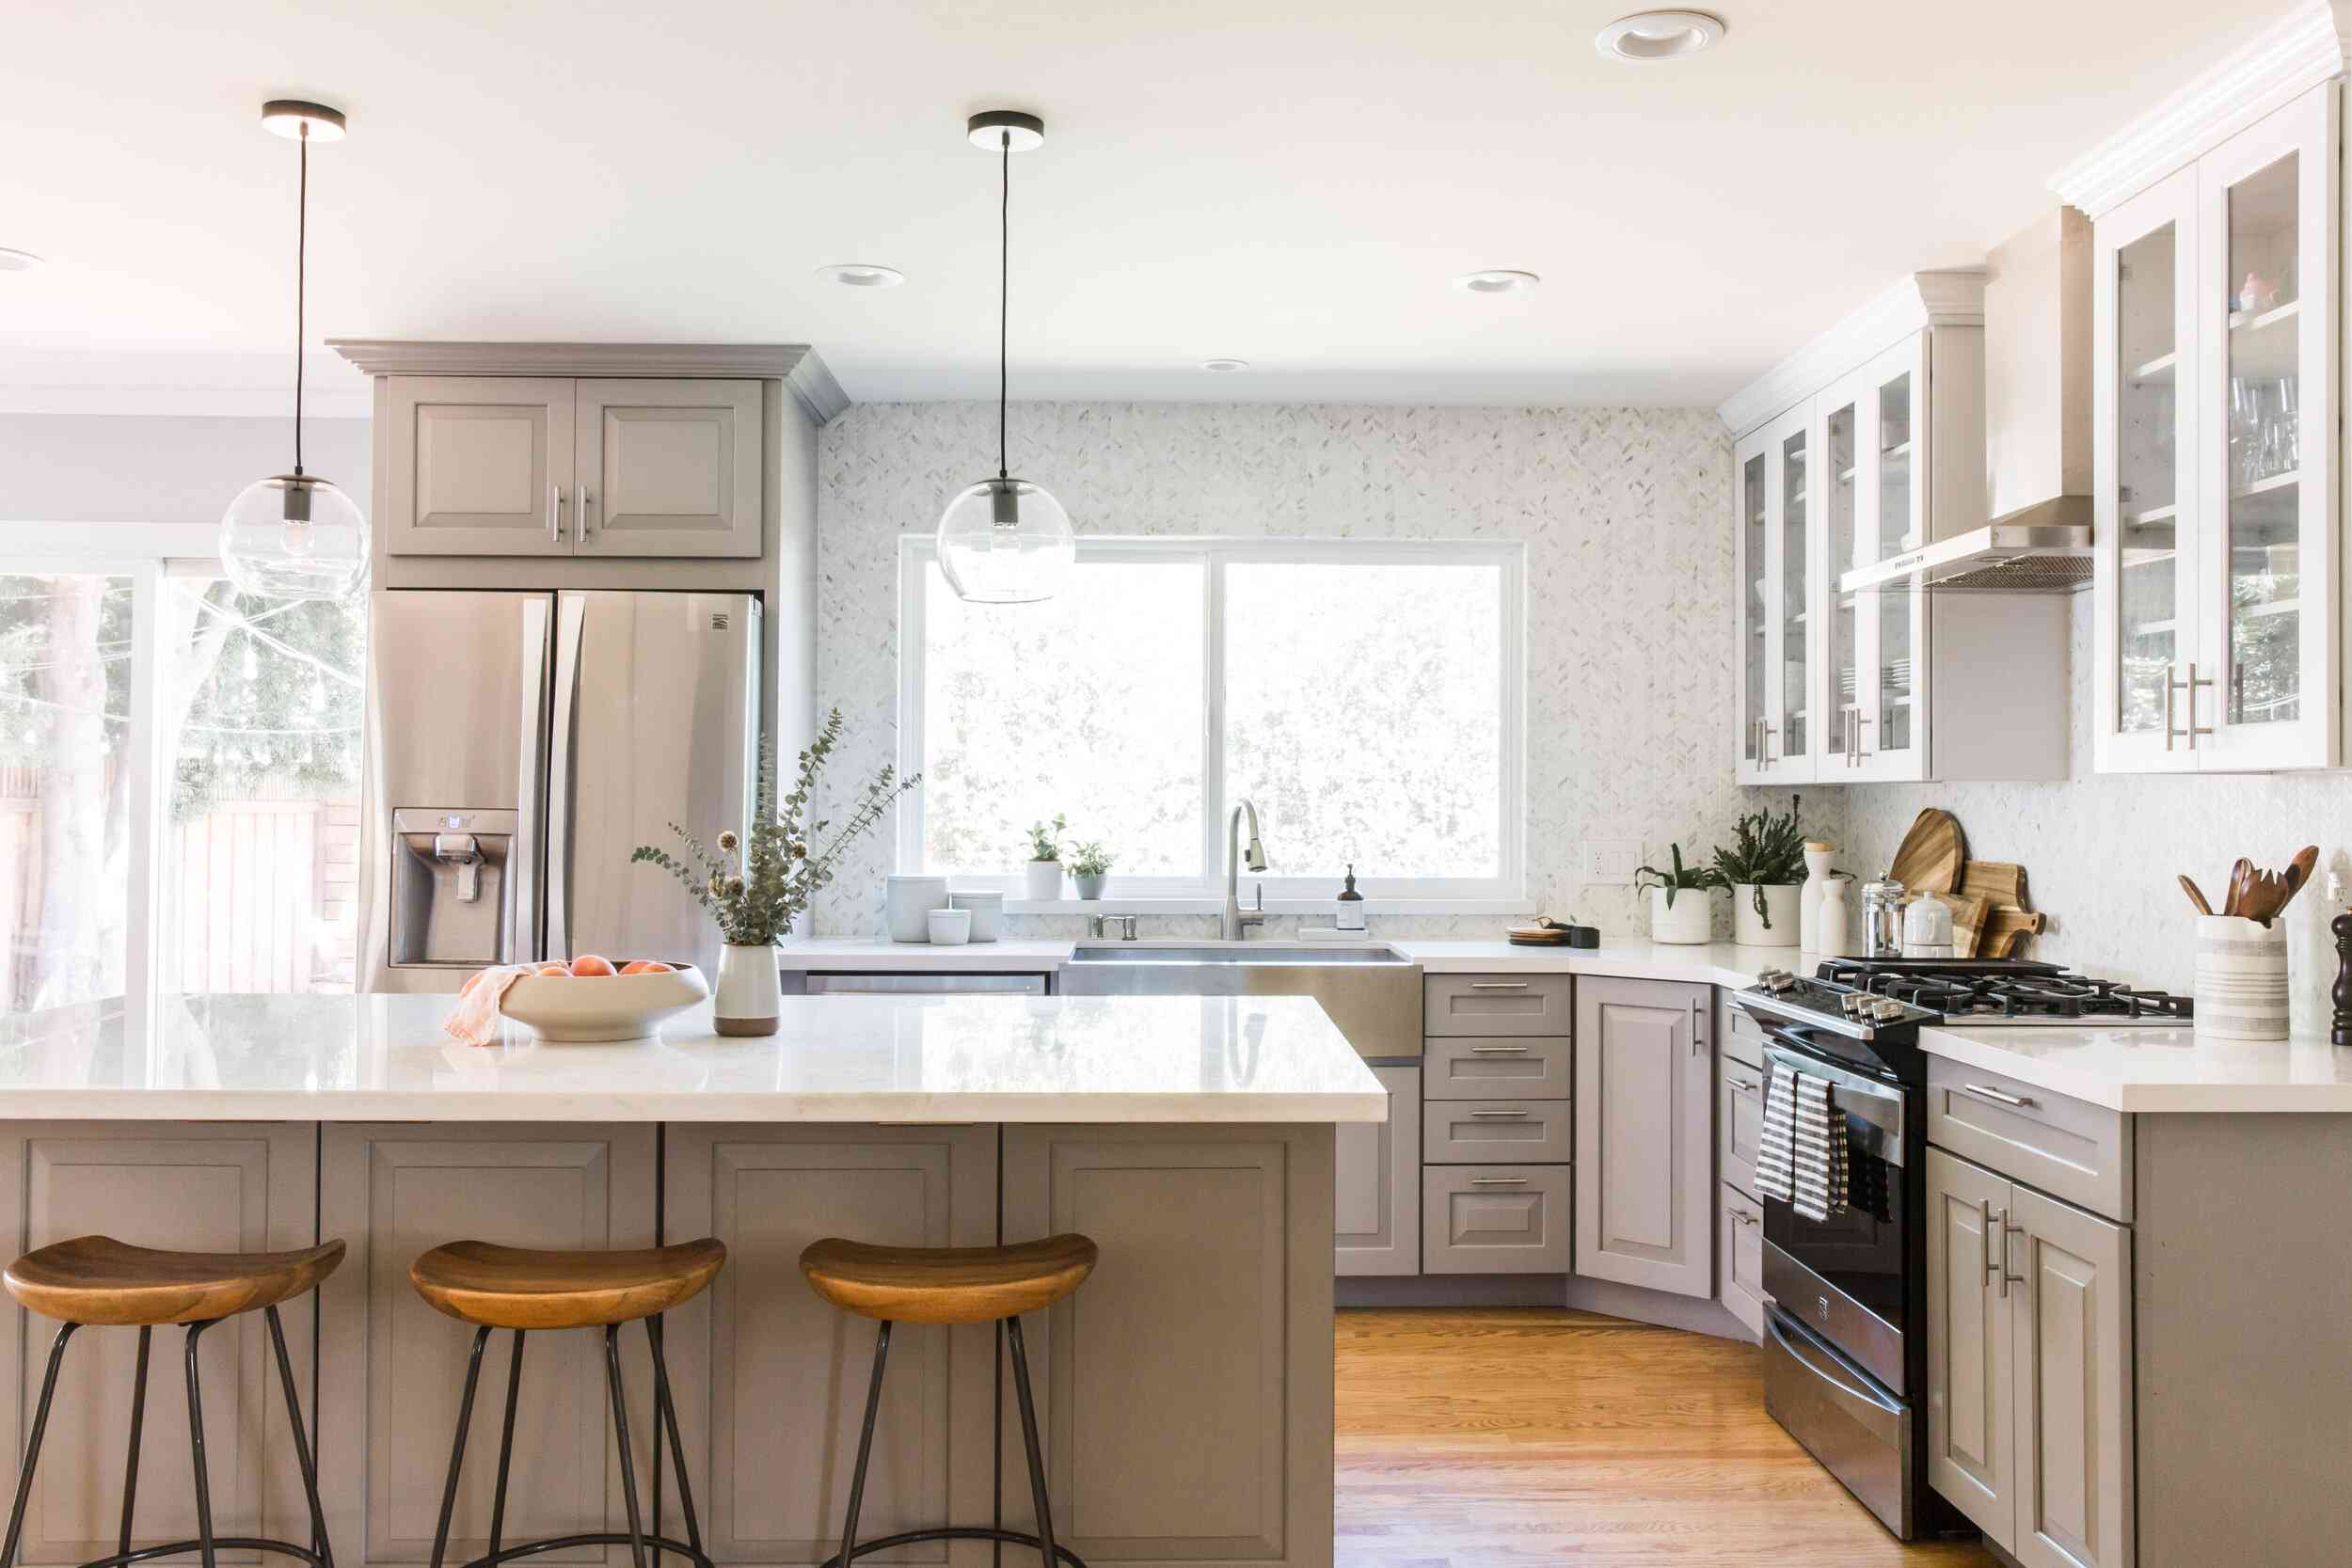 A kitchen with gray cabinets and a white tiled backsplash